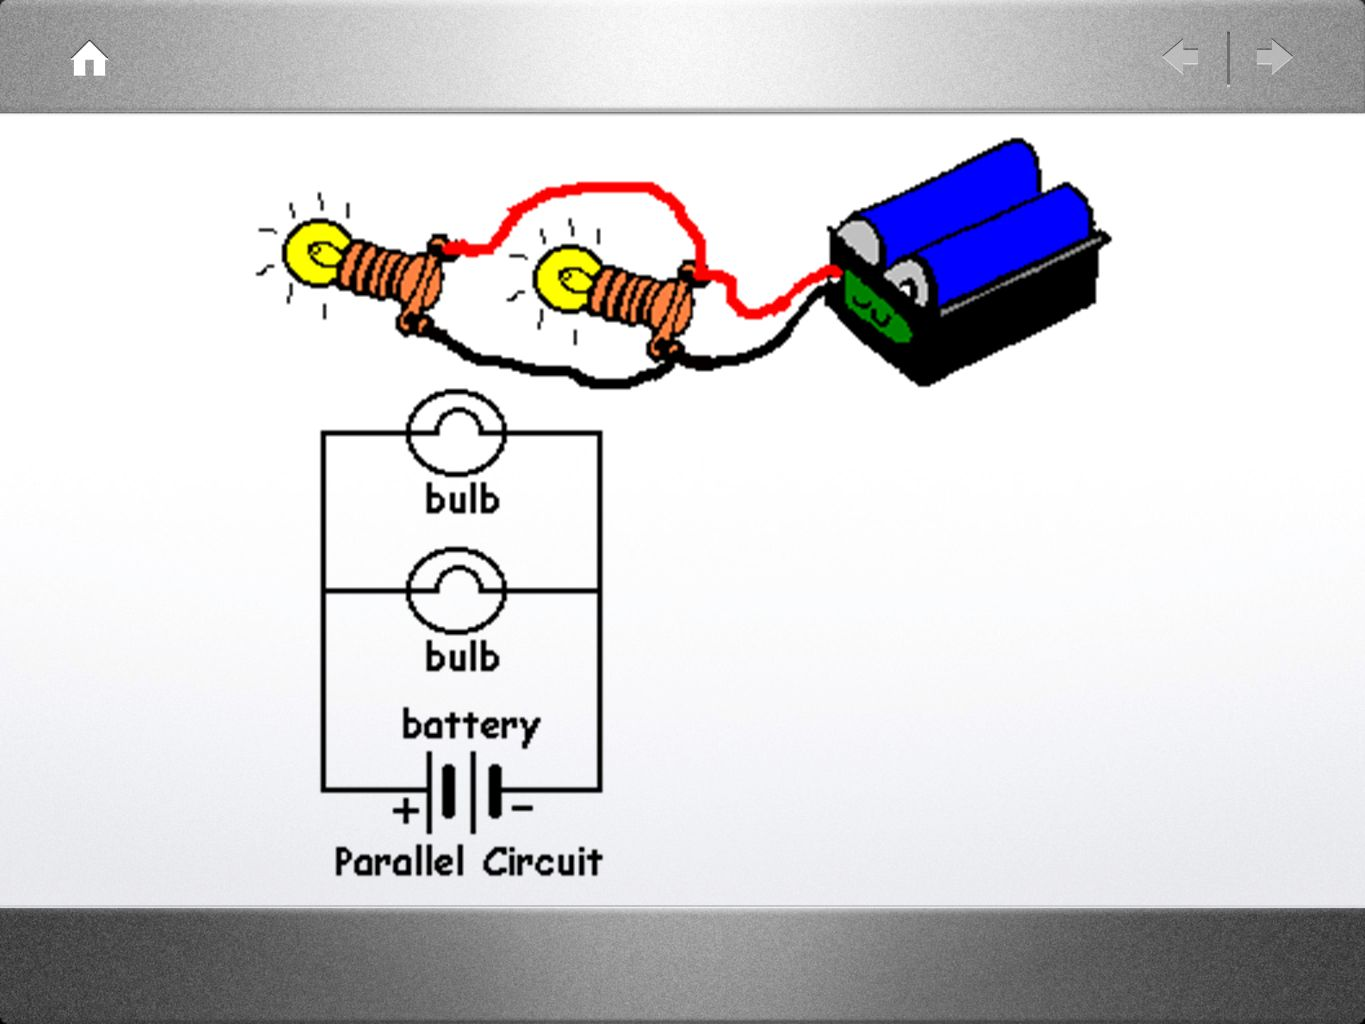 Electric Charge And Static Electricity Ppt Video Online Download To Make Two Smaller Circuits With Each Bulb Having Its Own Circuit Slide 62